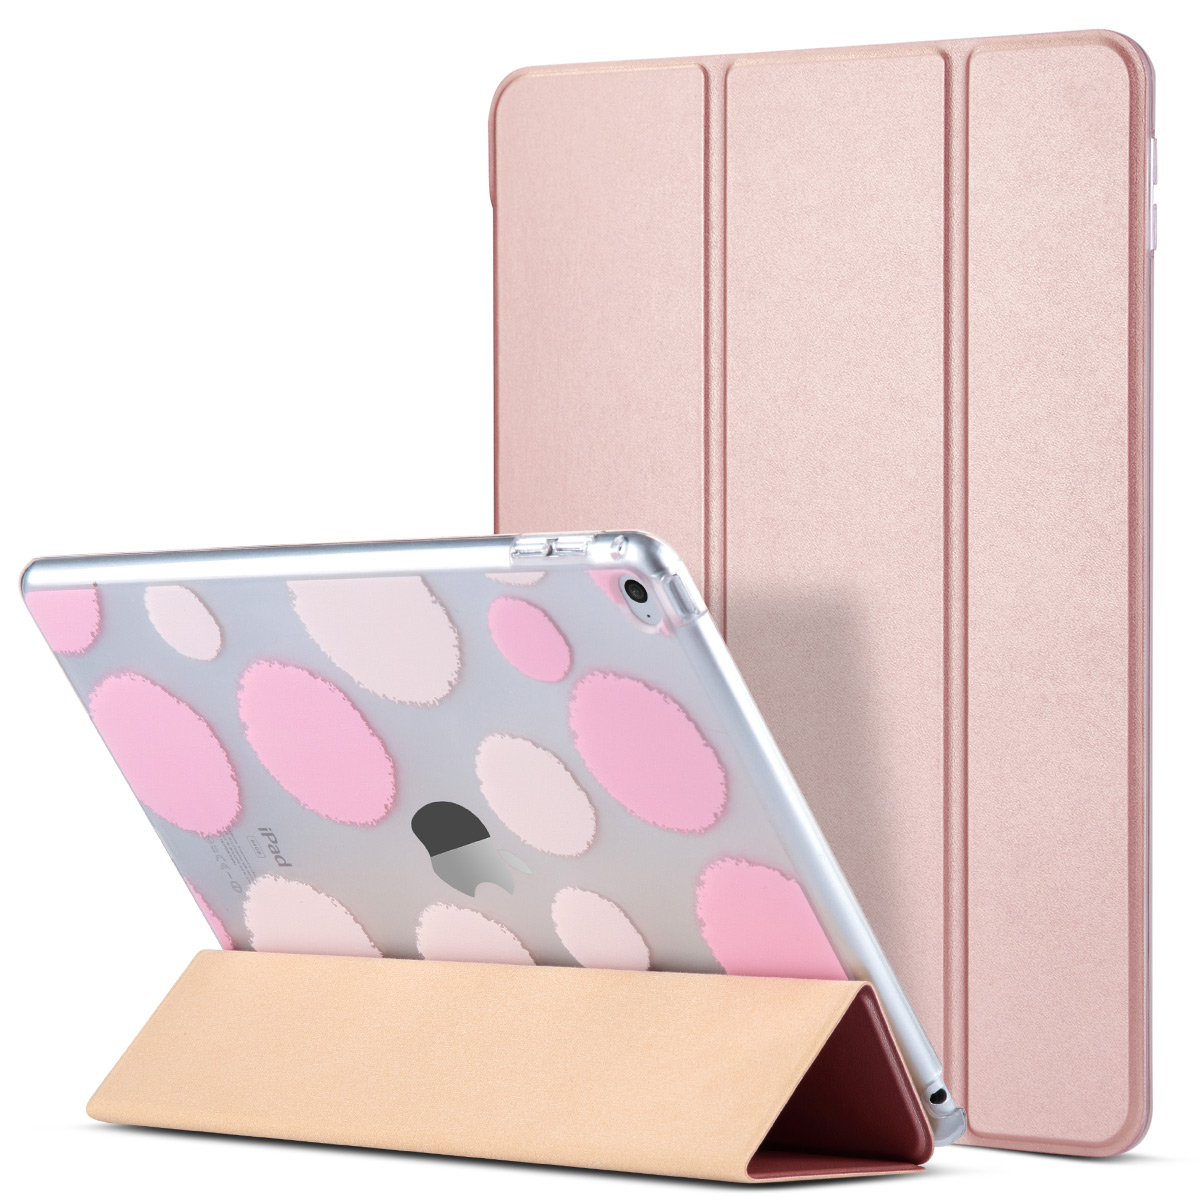 iPad Air 2 Case, ULAK [Polka Dot] Folio Slim Smart Case Cover with Trifold Stand and Magnetic Auto Wake & Sleep Function for iPad Air 2 / iPad 6th Generation